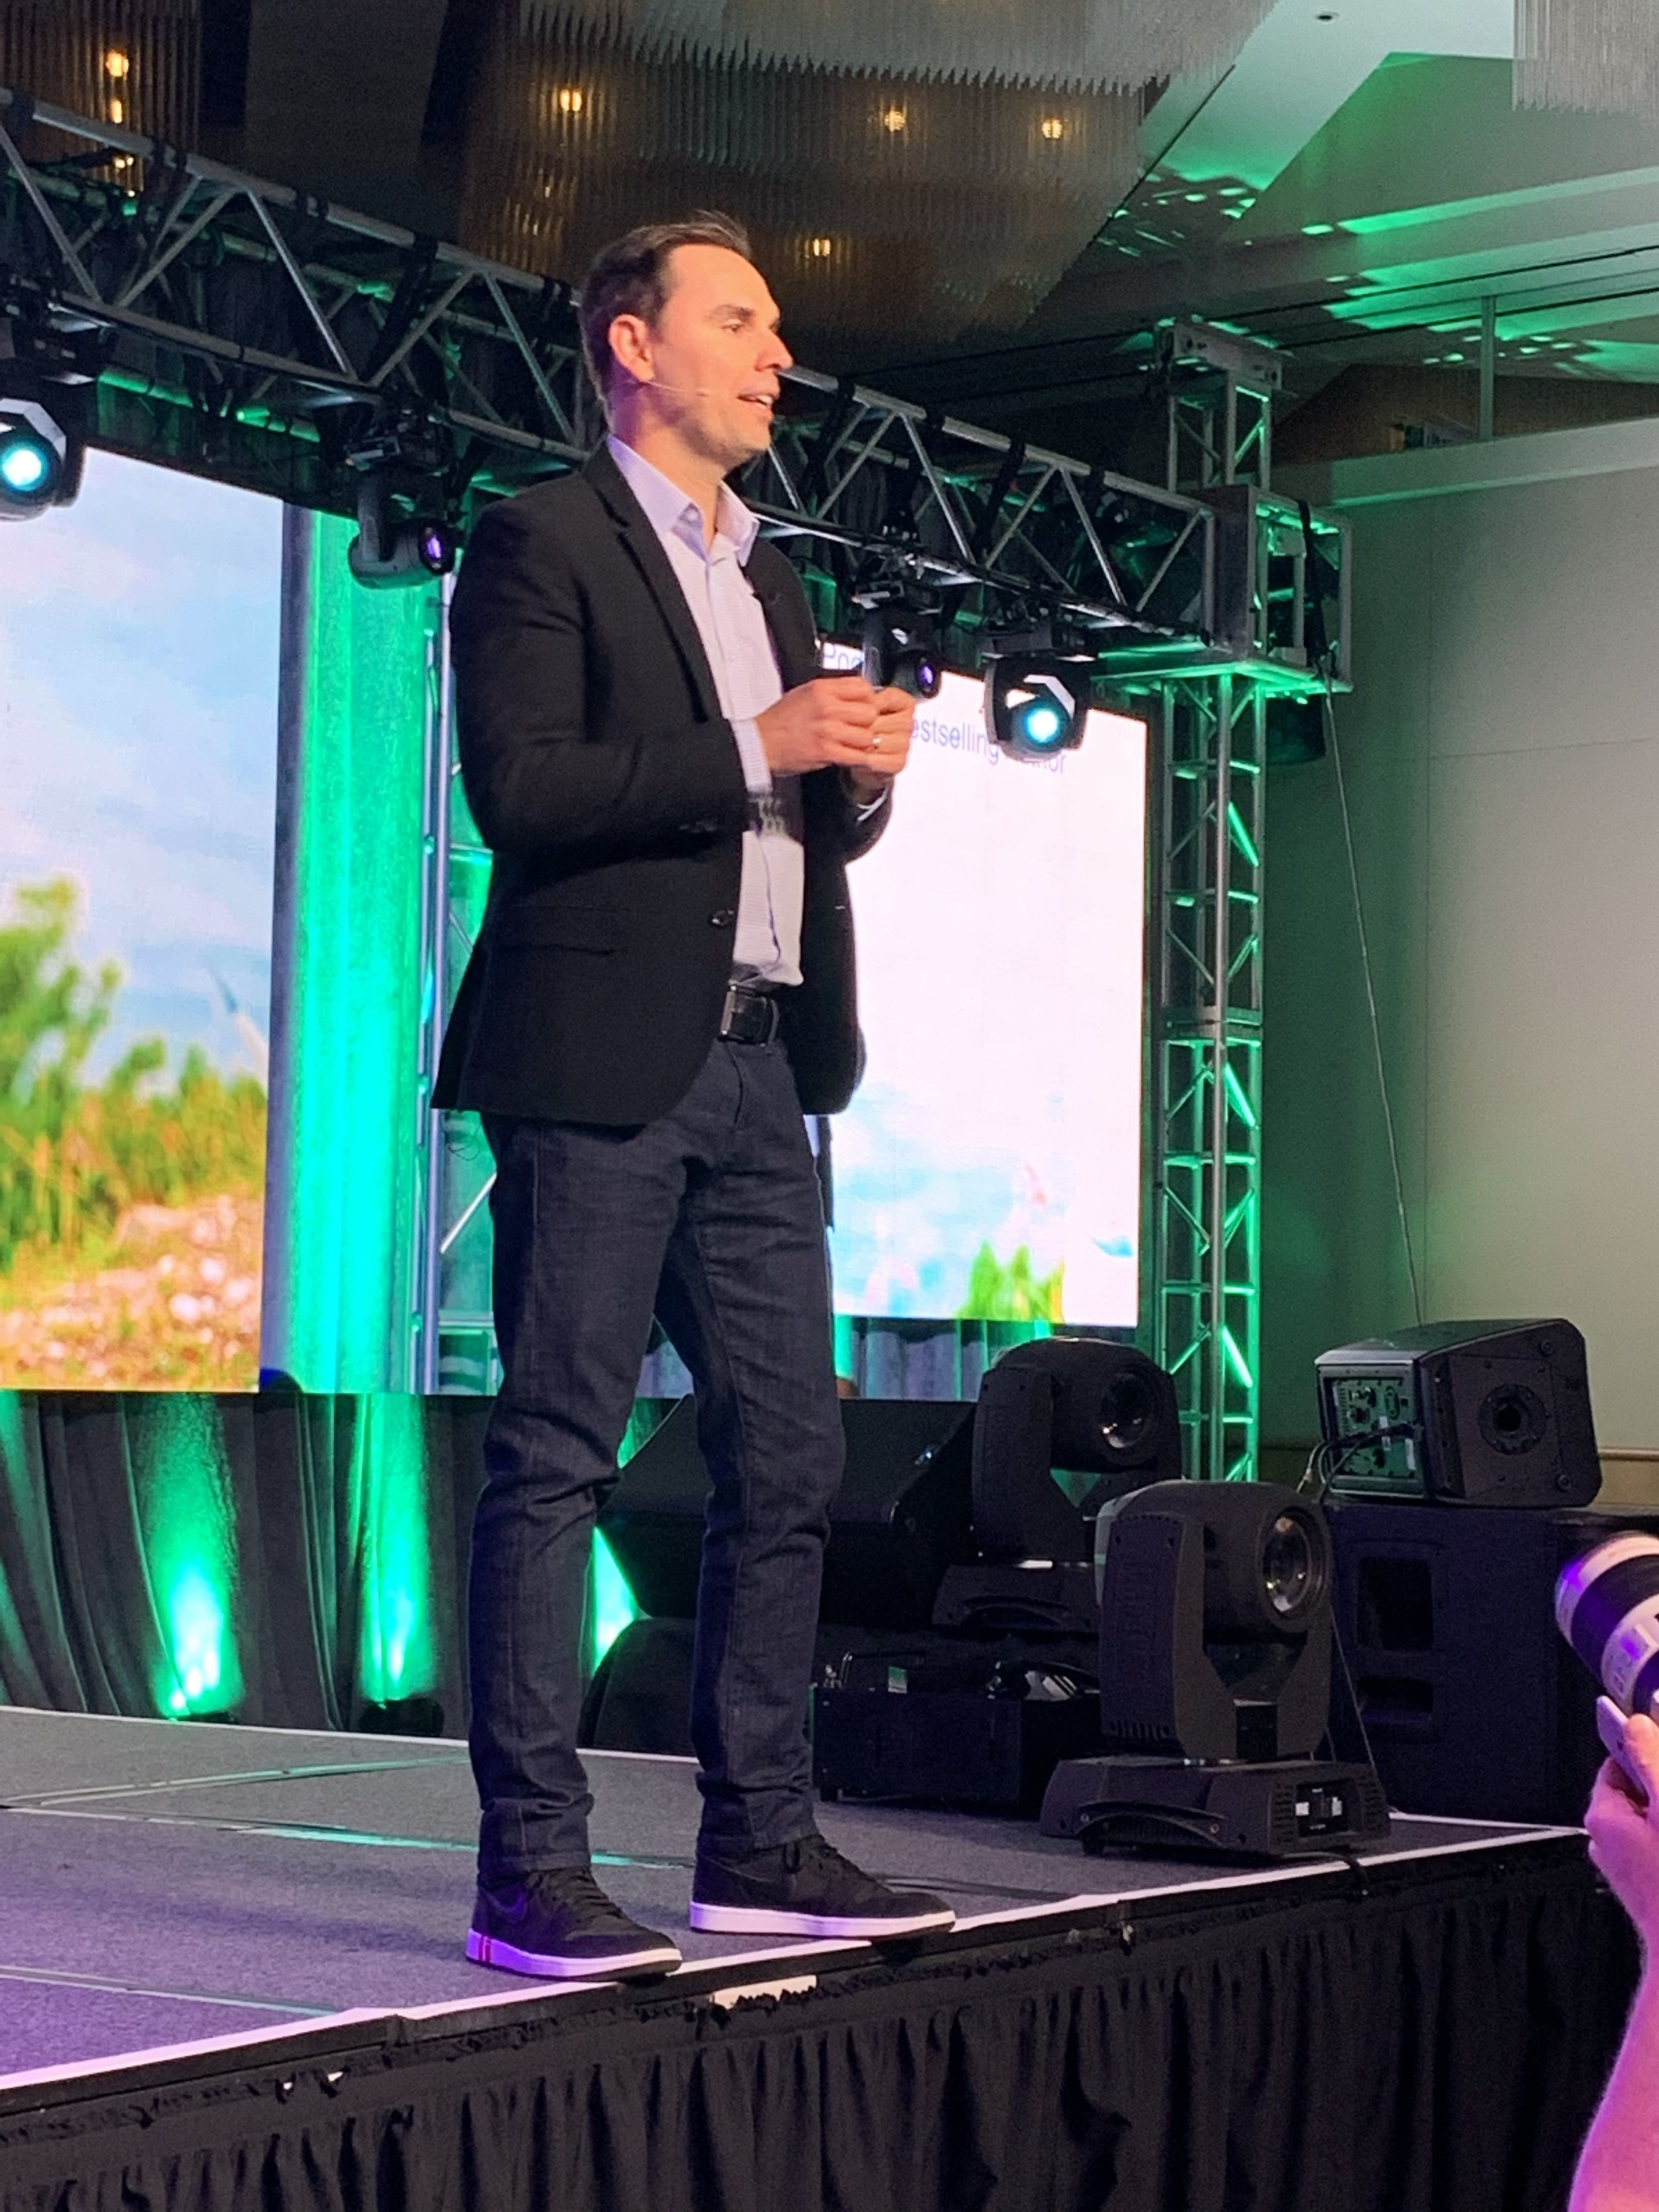 Brendon Burchard - How in the World Are Influencers Making $10M a Year?